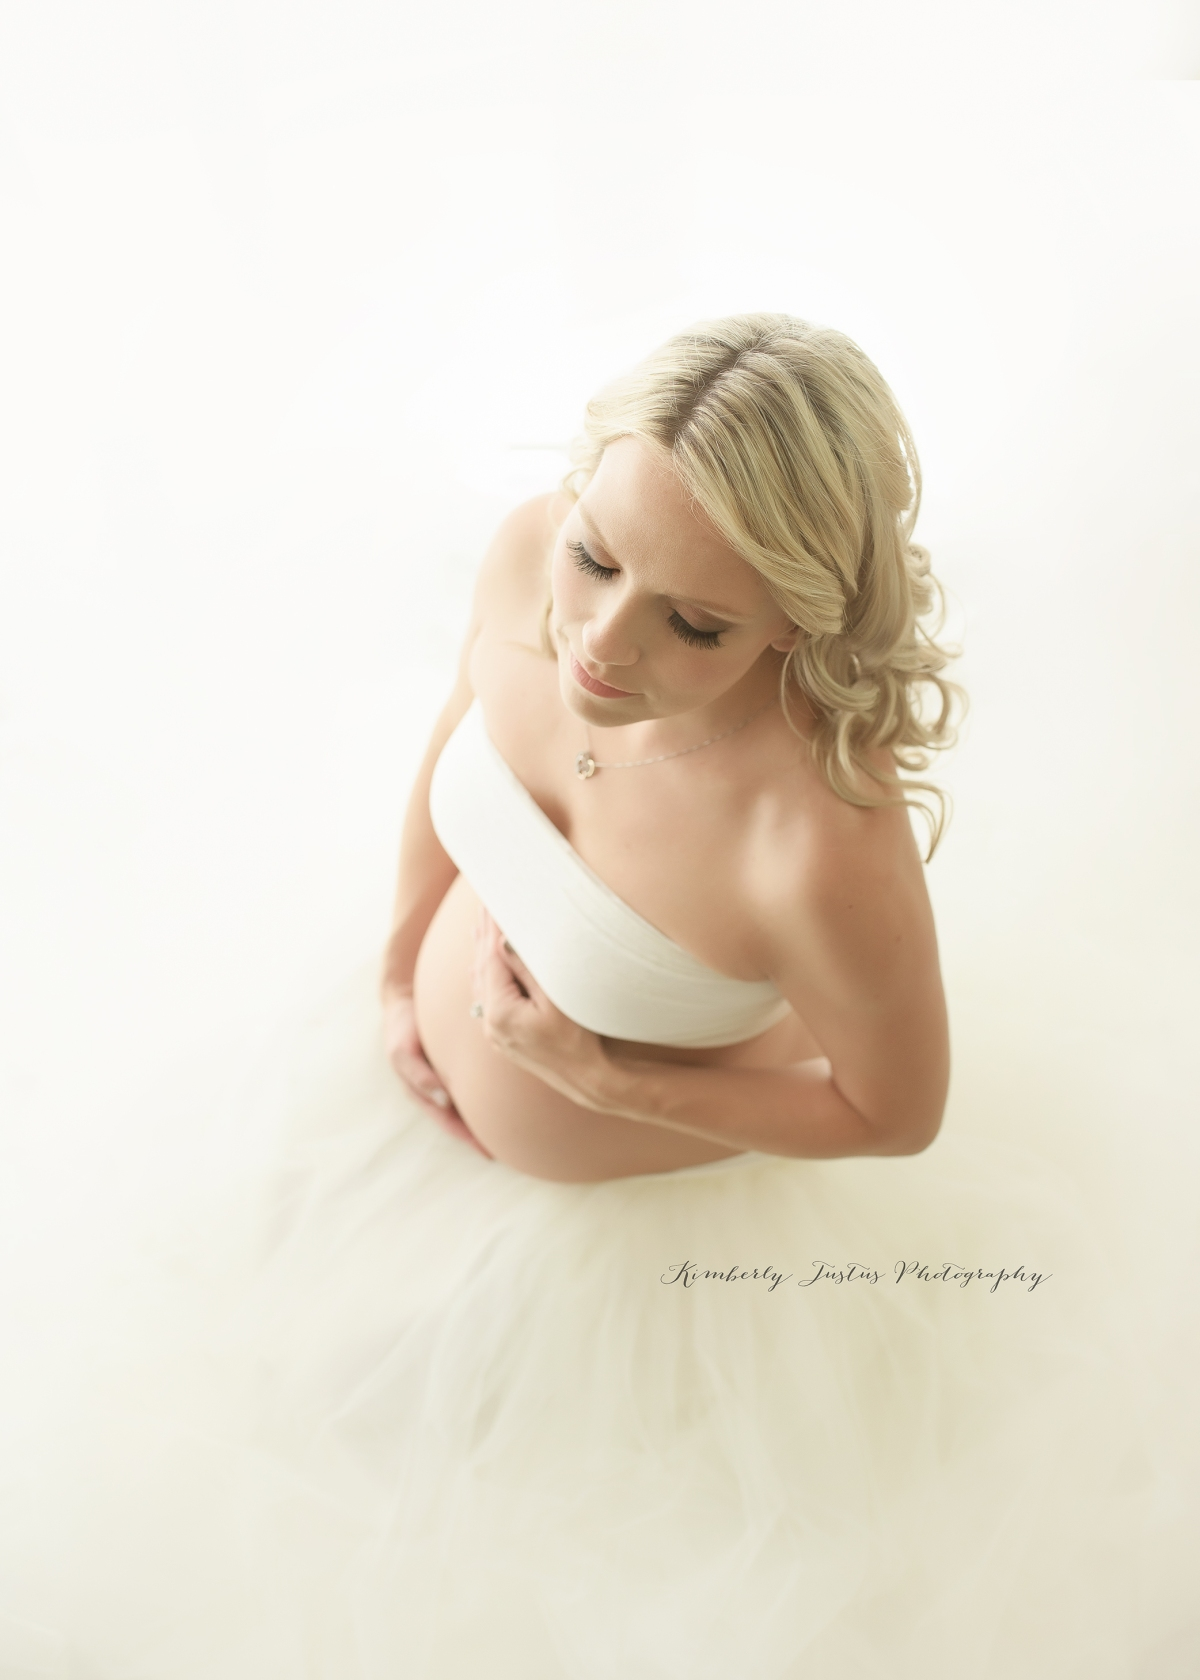 Temecula Murrieta Newborn Baby Maternity Photographer Kimberly Justus Photography Maternity Blog (4 of 9)